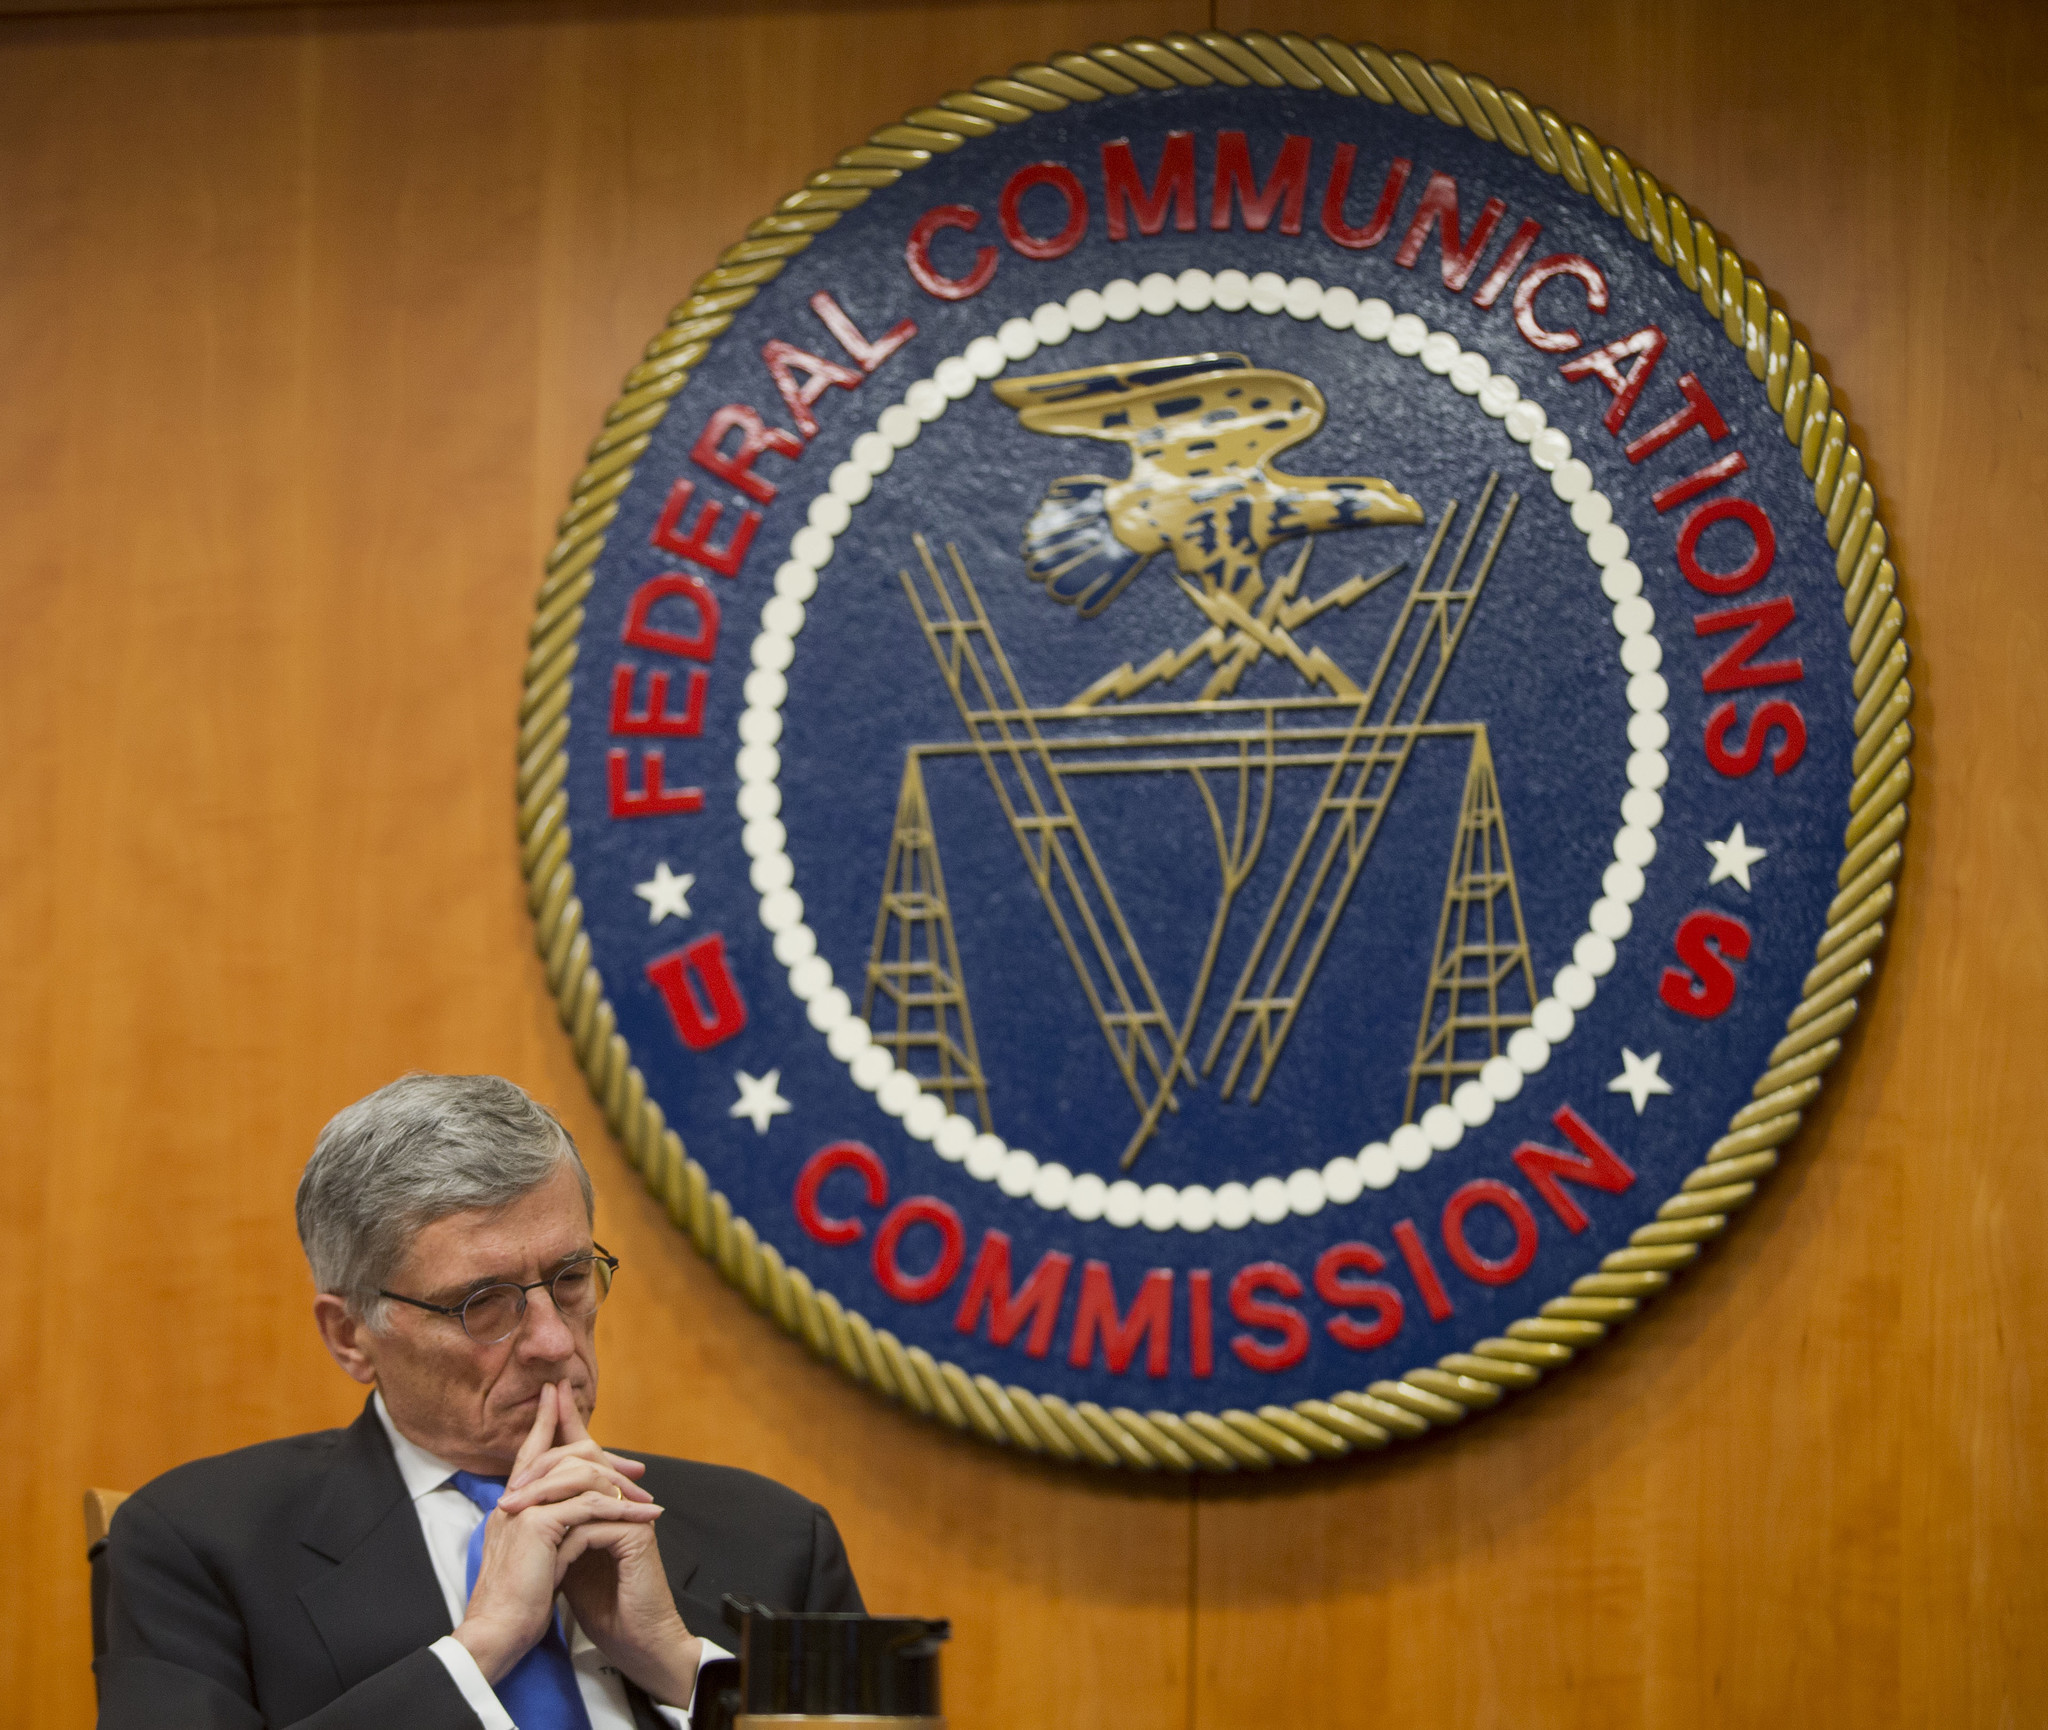 the impact of the federal communications commission ruling in the cable industry Fcc repeals net neutrality rules, in a sweeping act of deregulation federal communications commission to deregulate top cable industry.